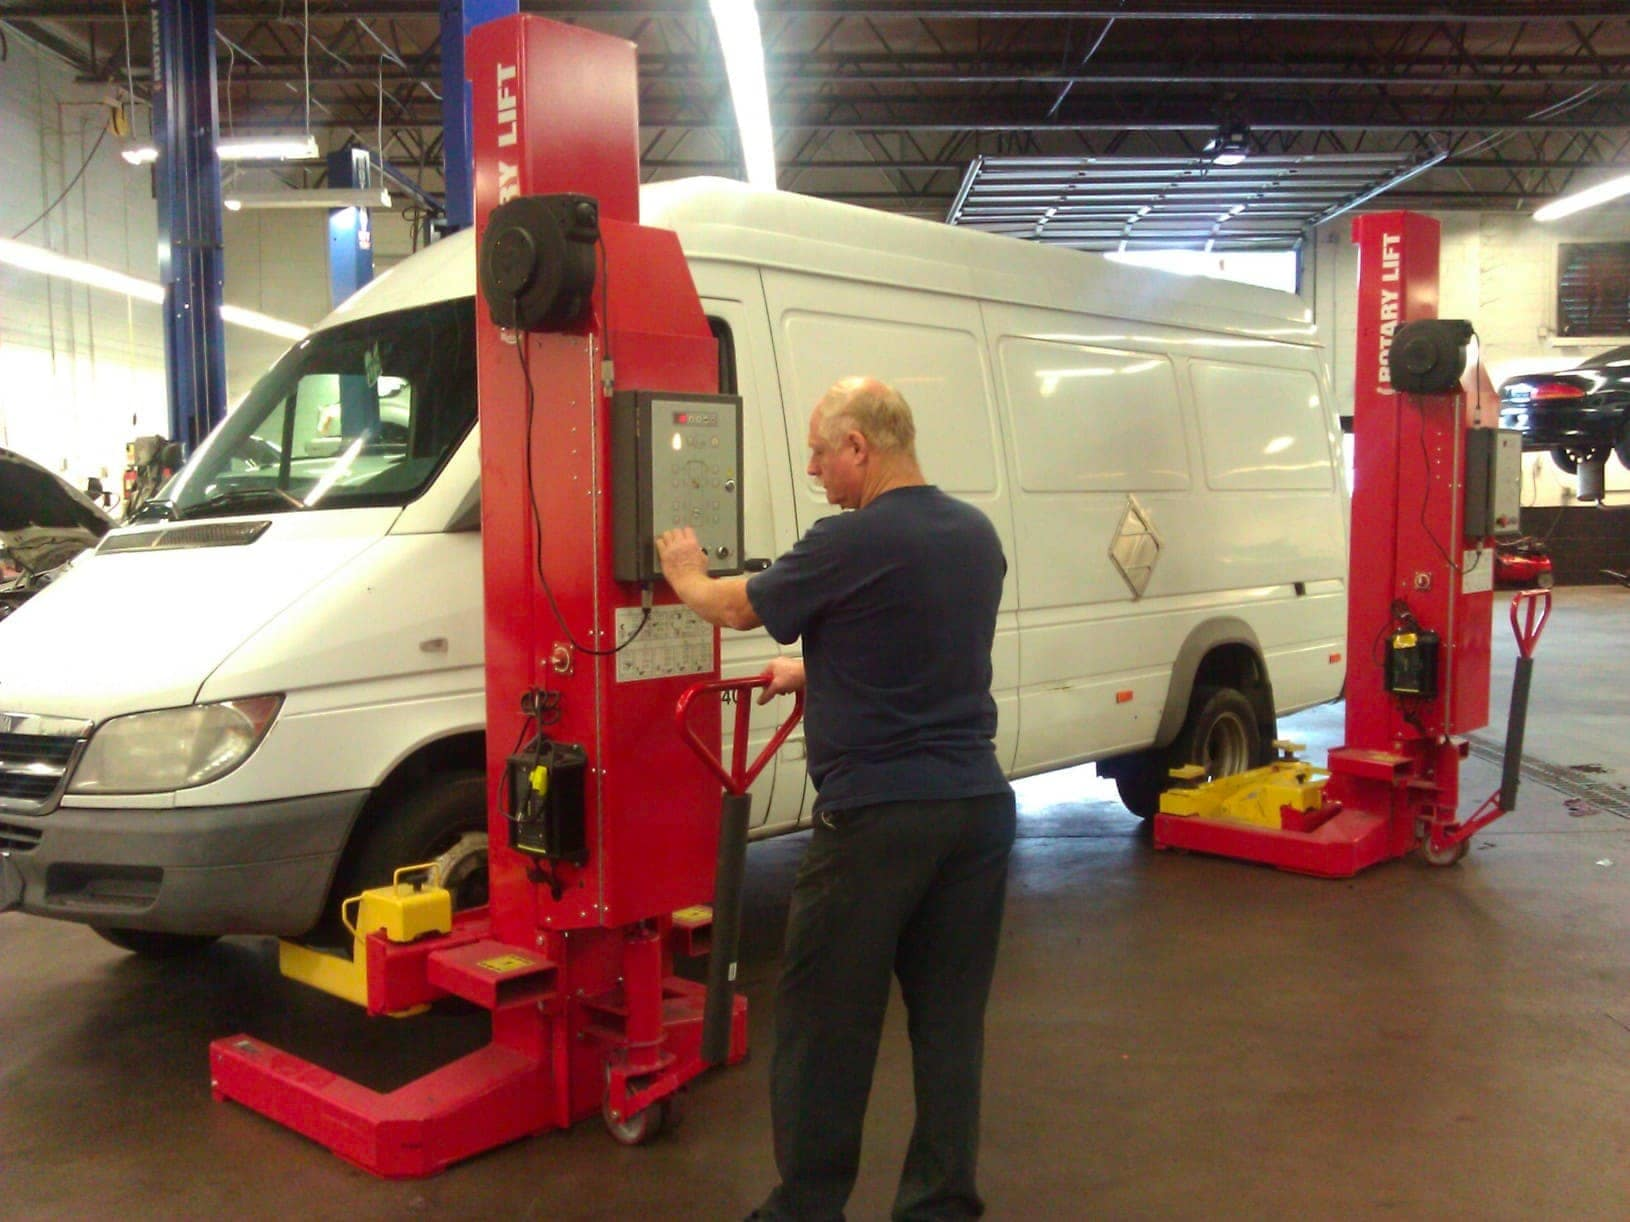 Trained Sprinter and Commercial Vehicle Technicians